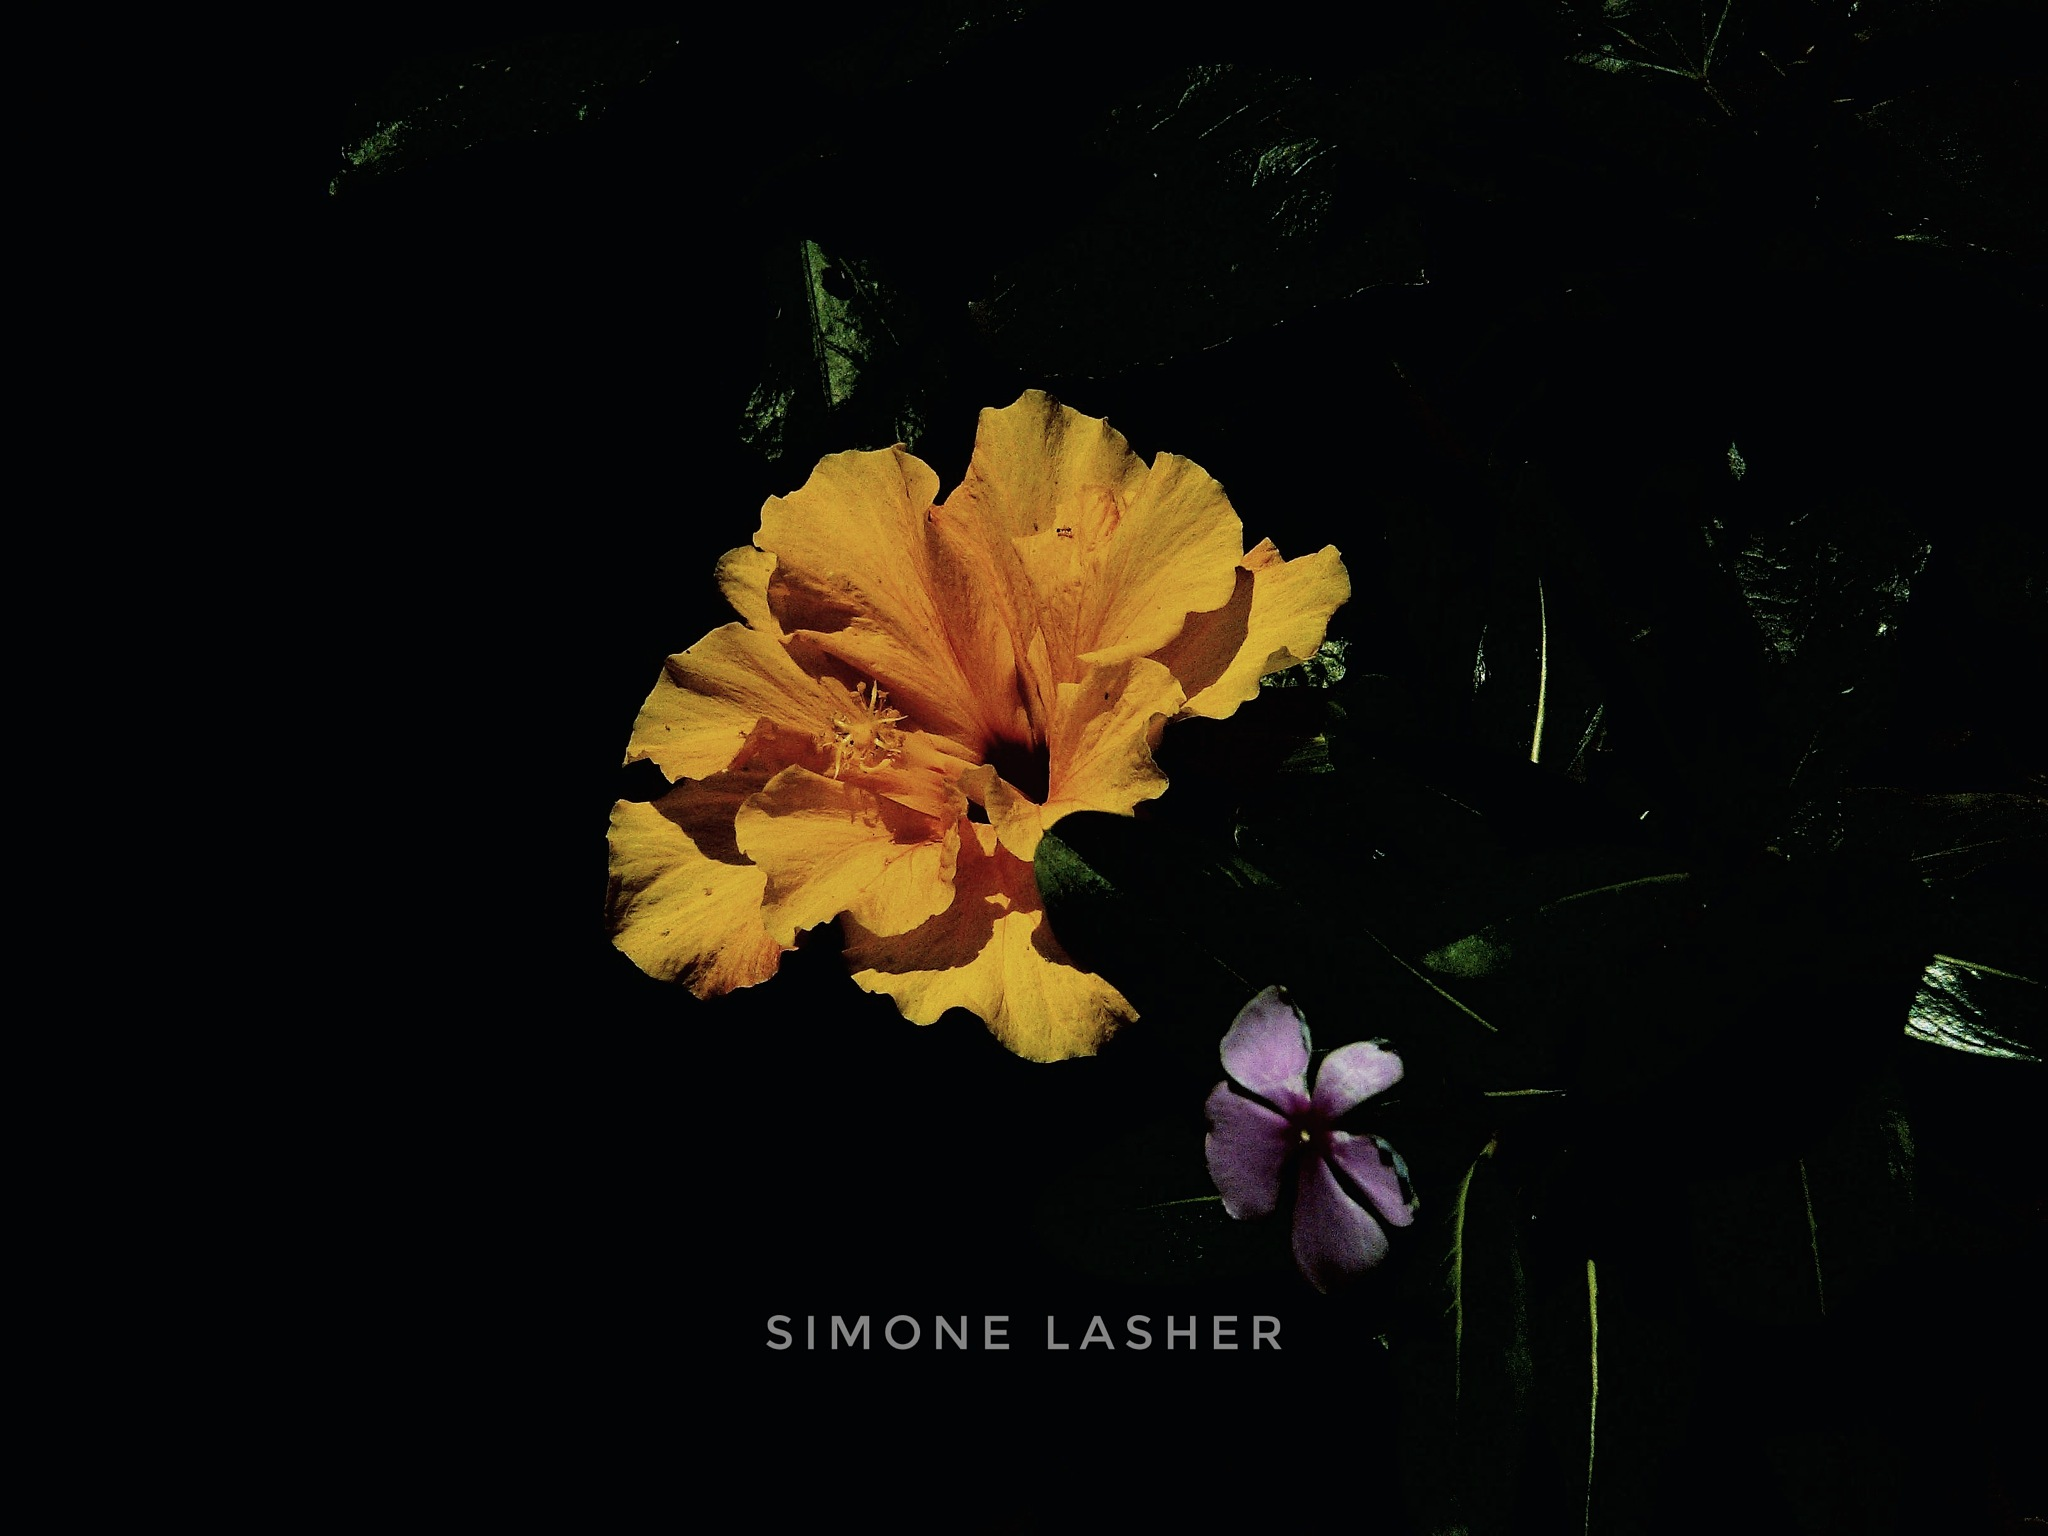 Untitled by Simone Lasher